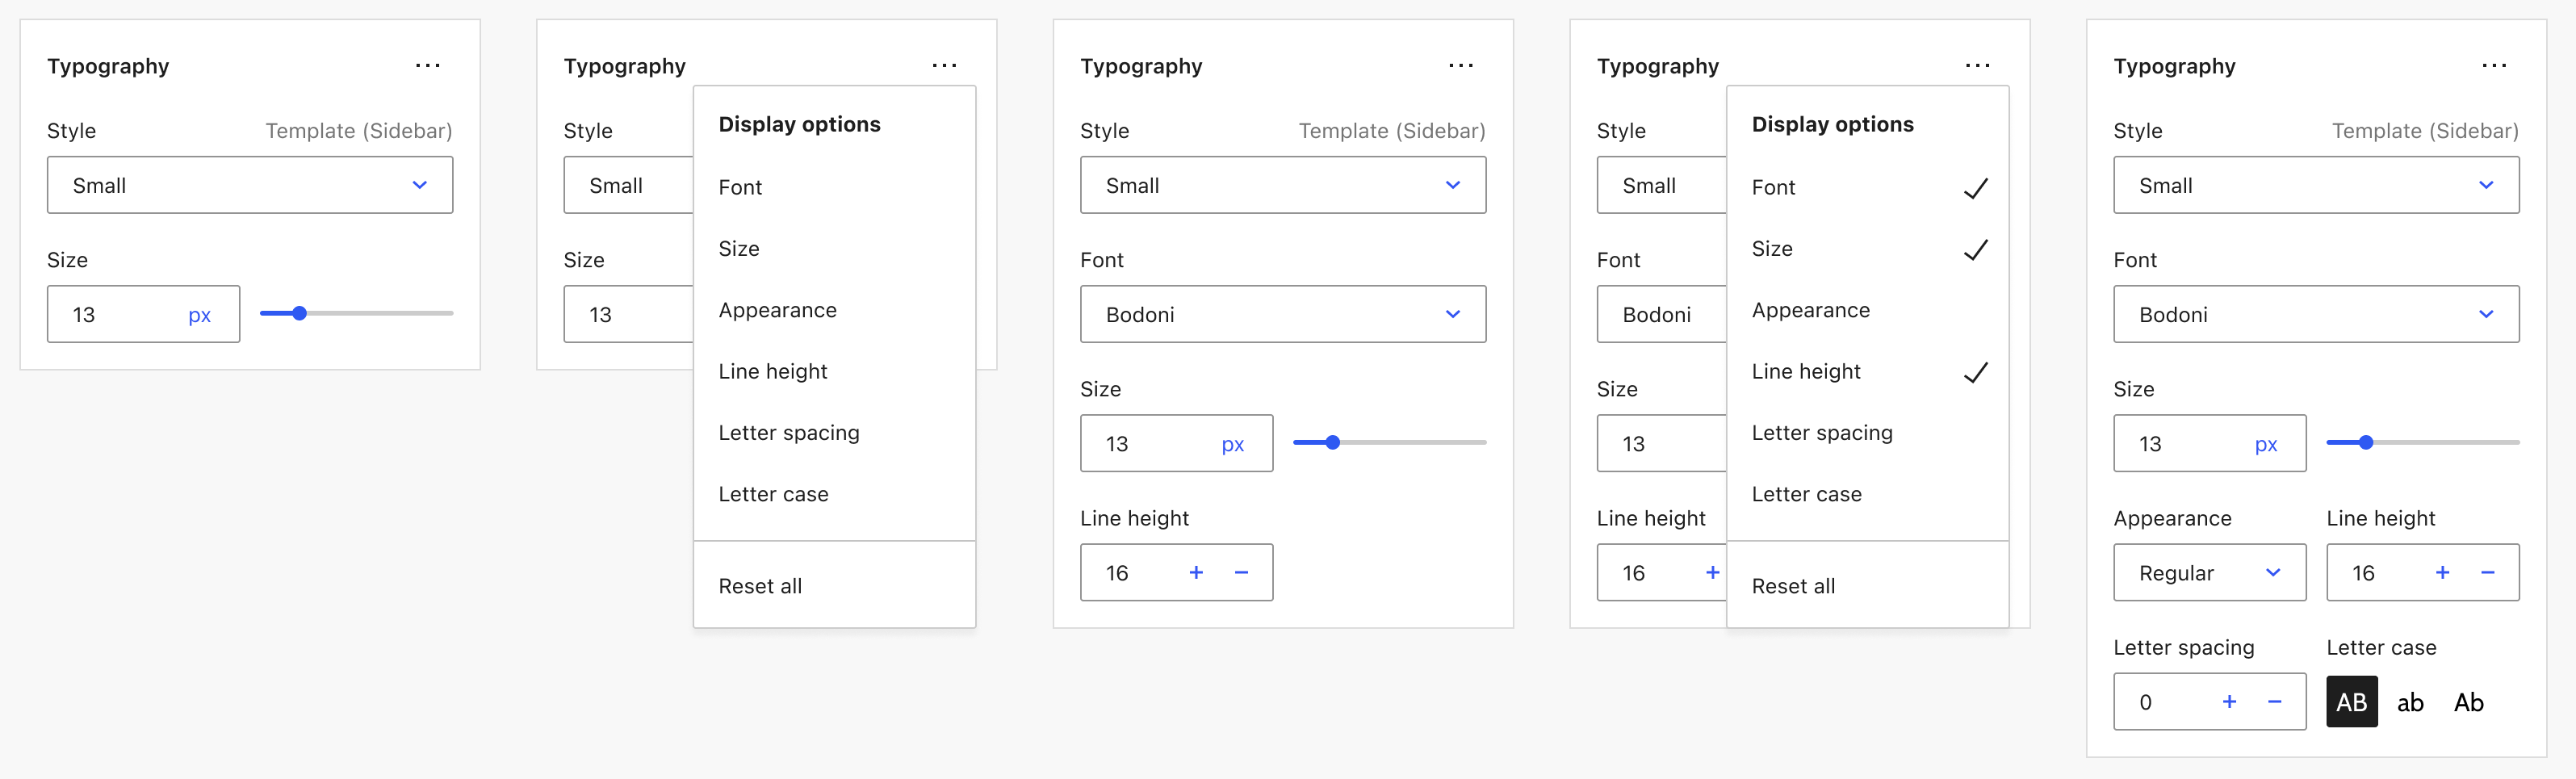 Gutenberg block editor proposal for toggling typography controls.